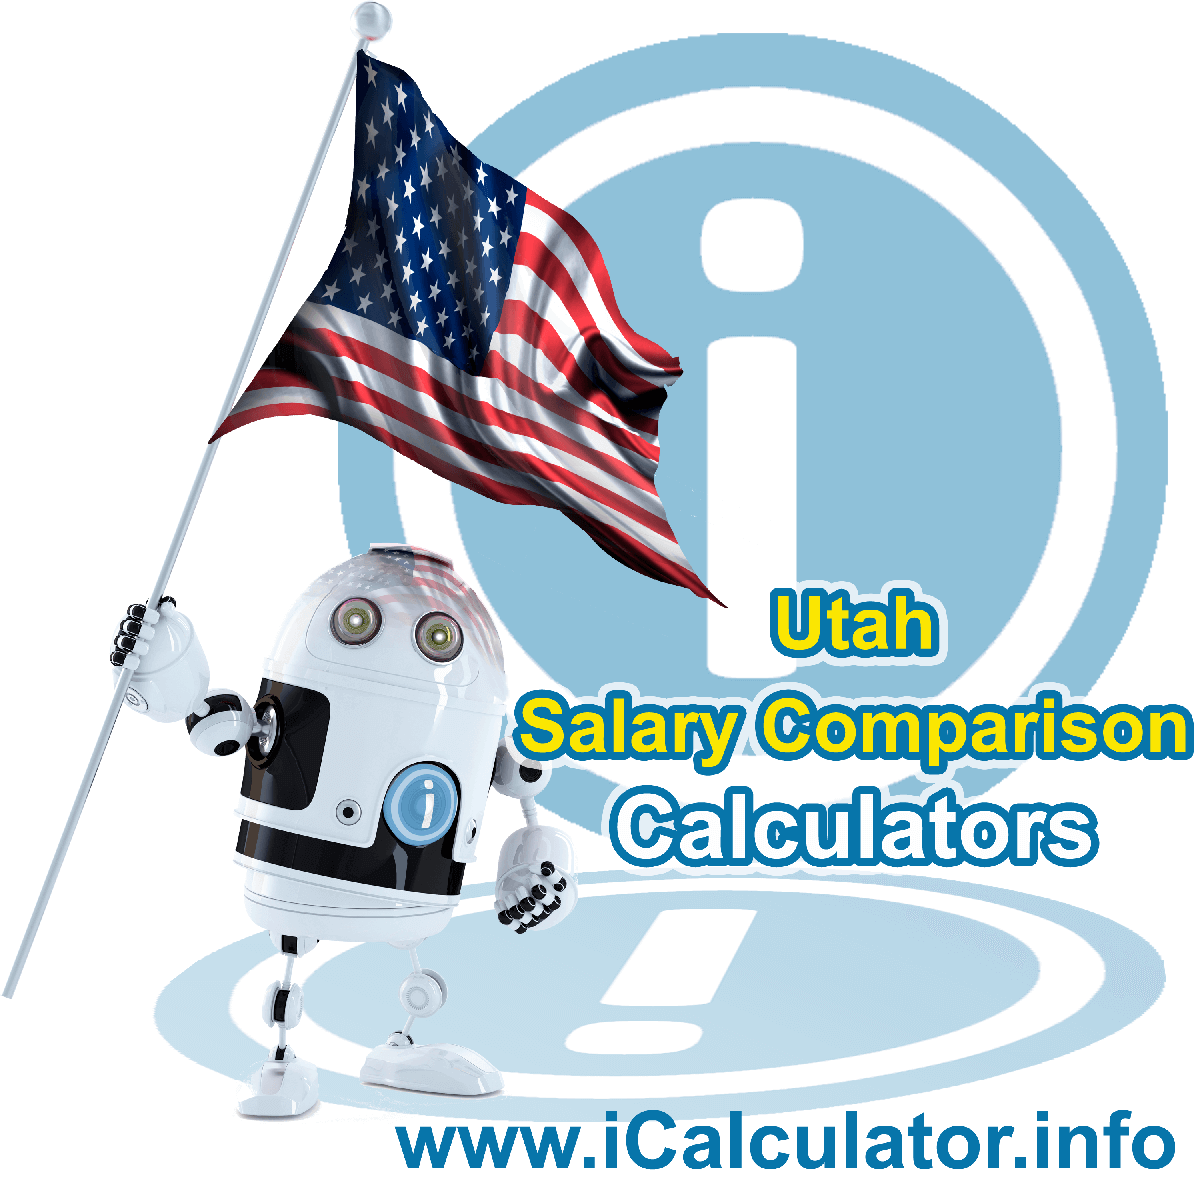 Utah Salary Comparison Calculator 2020 | iCalculator | The Utah Salary Comparison Calculator allows you to quickly calculate and compare upto 6 salaries in Utah or between other states for the 2020 tax year and historical tax years. Its an excellent tool for jobseekers, pay raise comparison and comparison of salaries between different US States